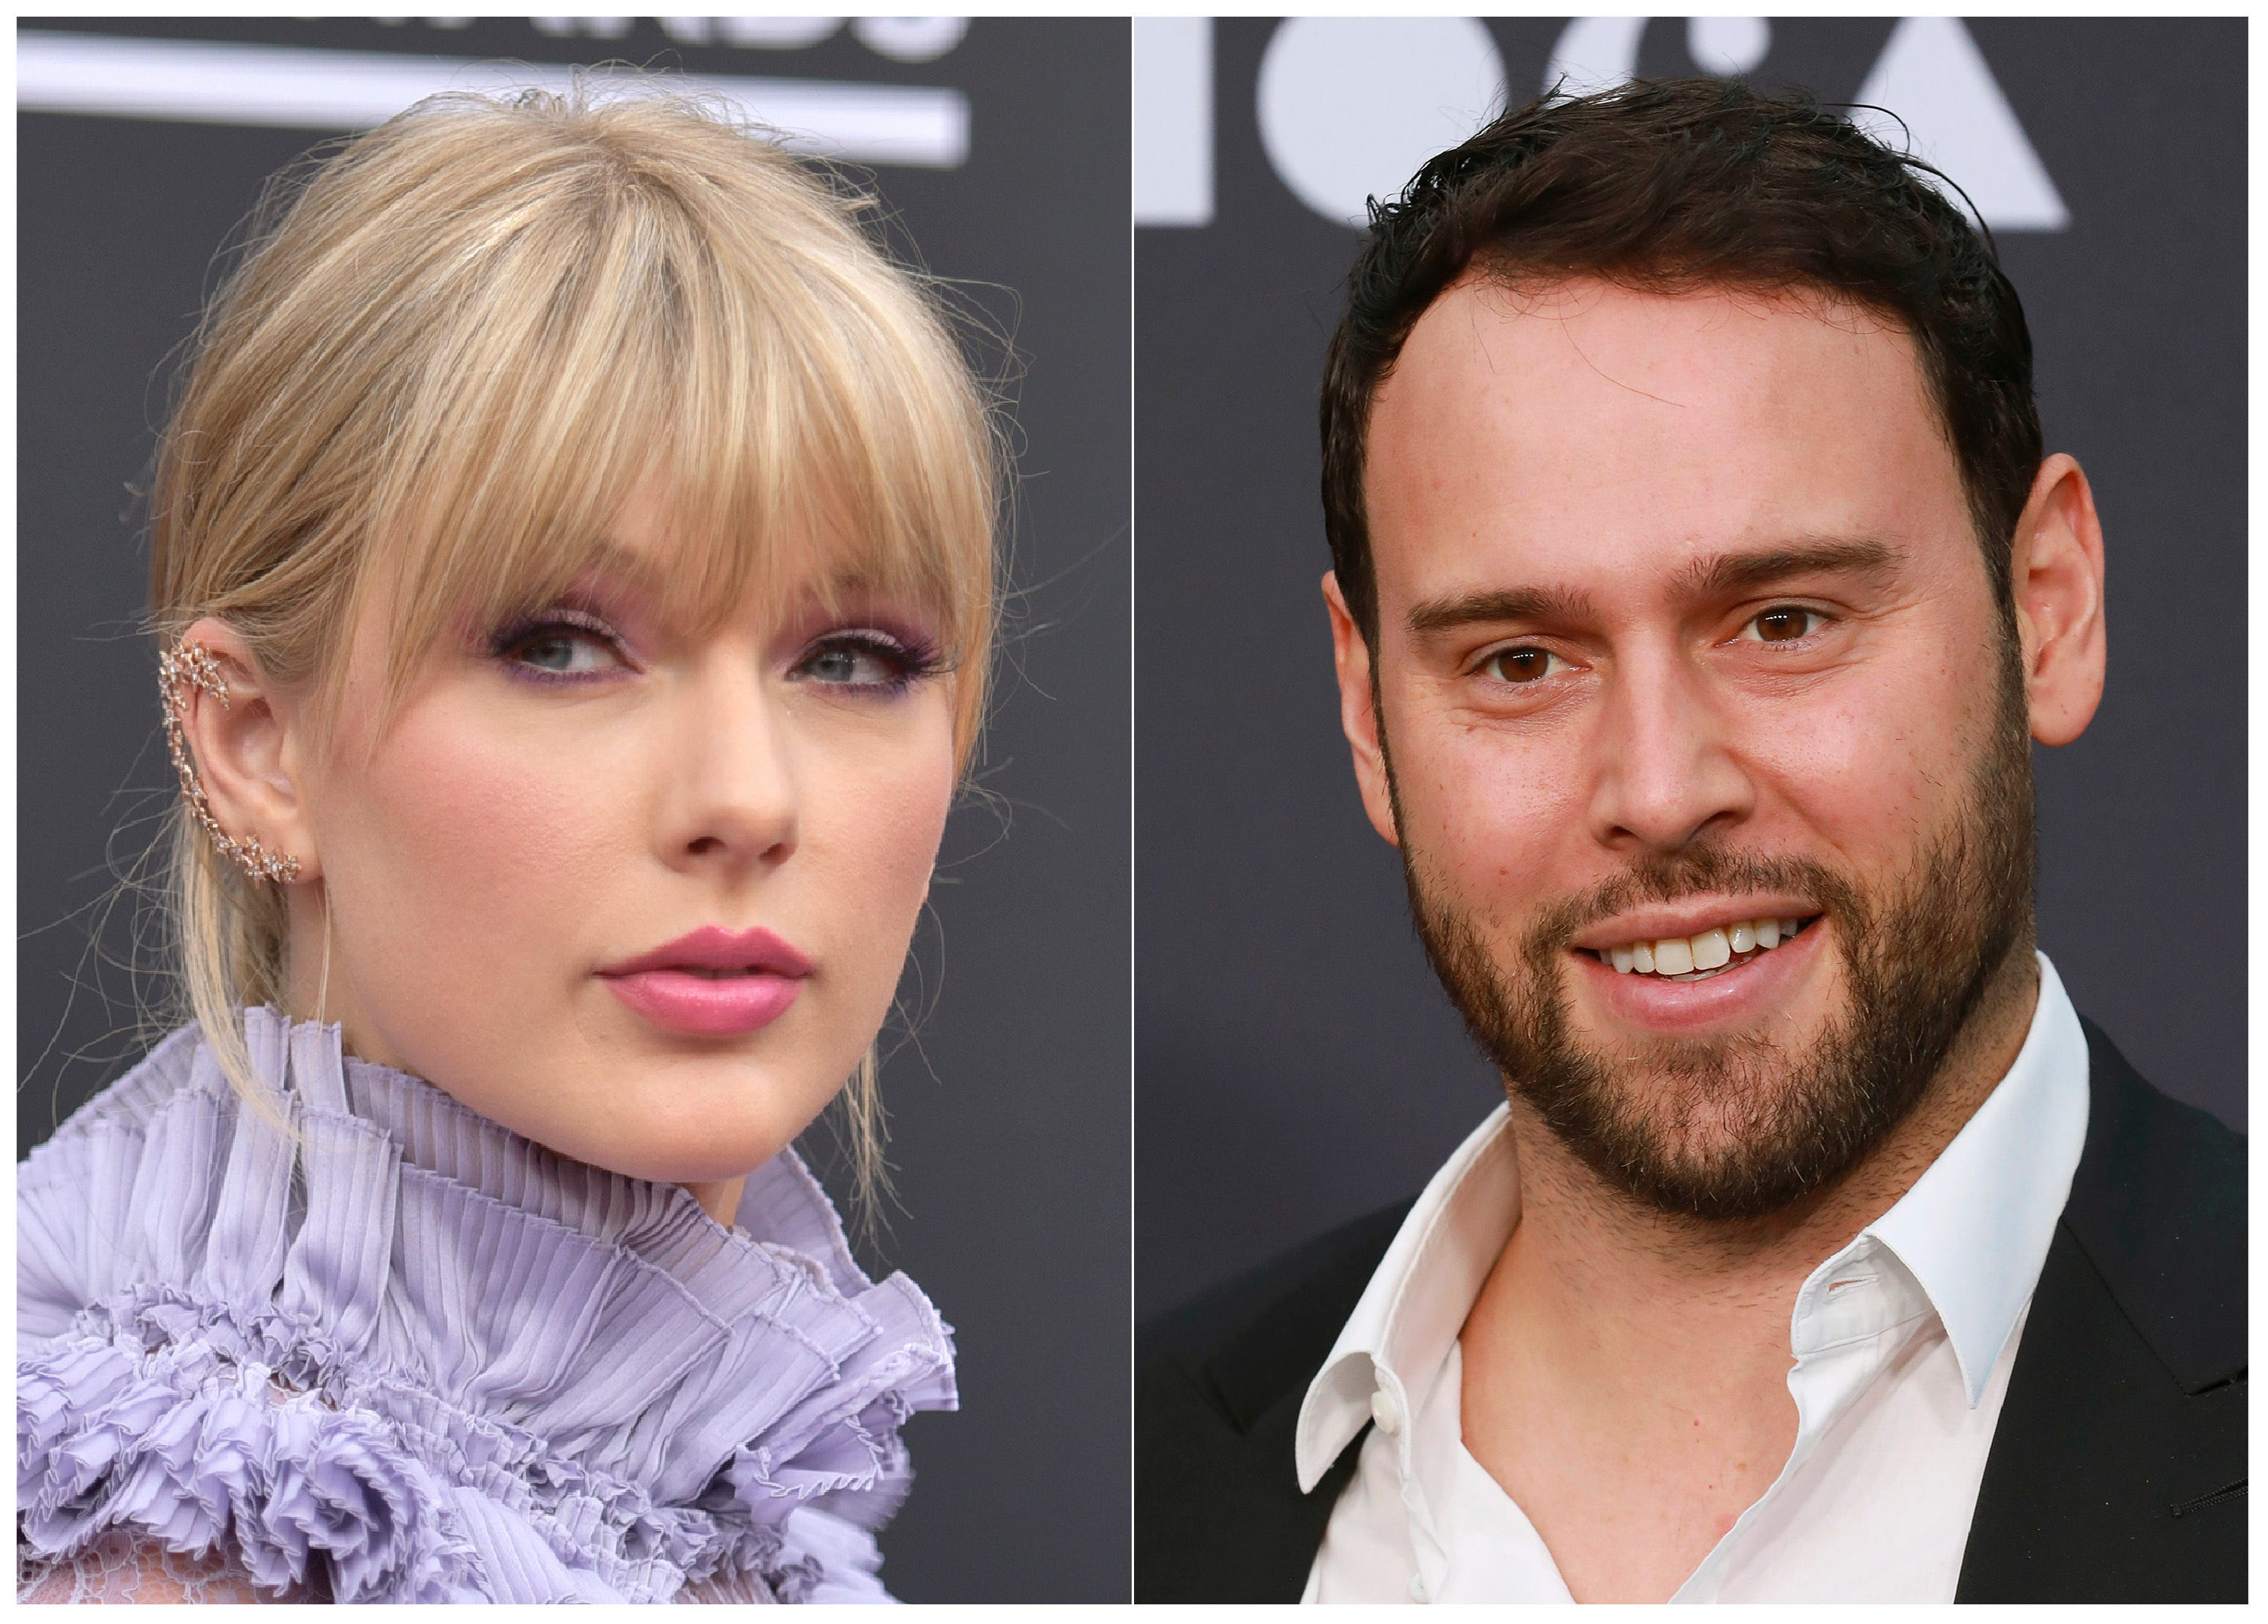 Taylor Swift Scooter Braun Had A Friendship Before Label Drama